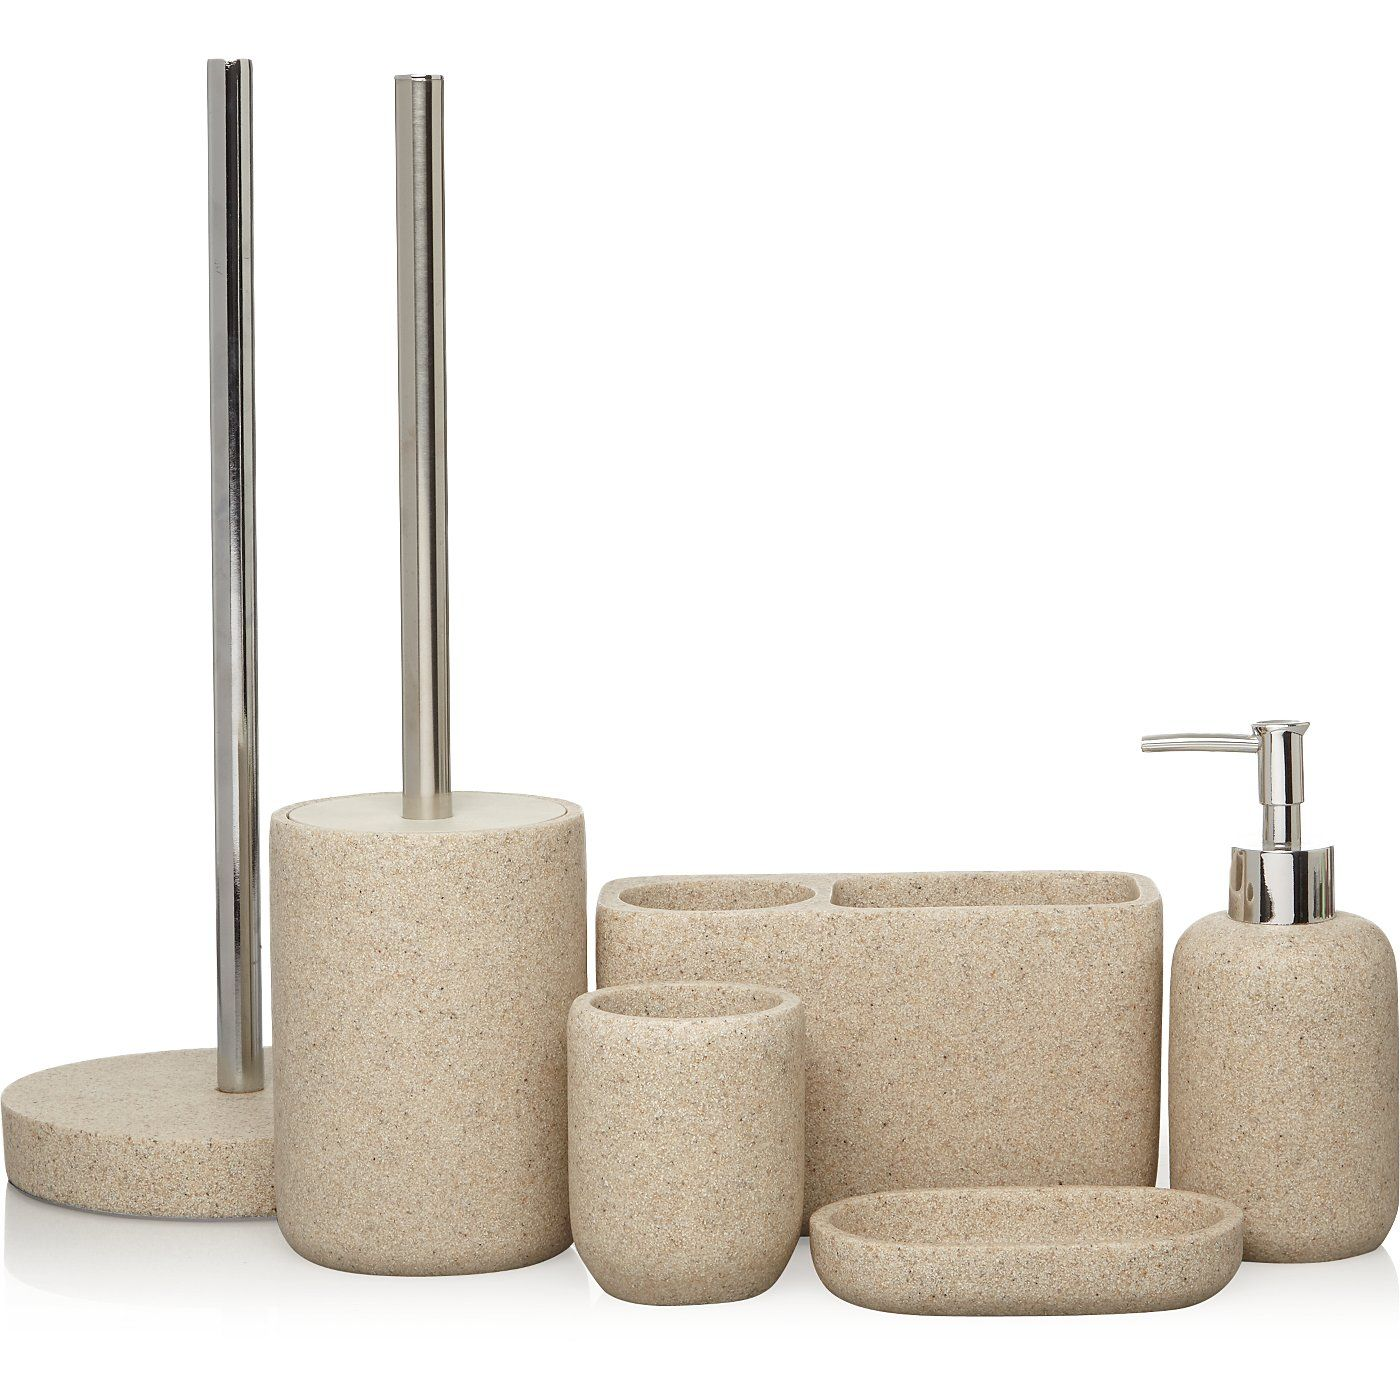 Buy Natural Sandstone Bath Accessories Range from our Bathroom